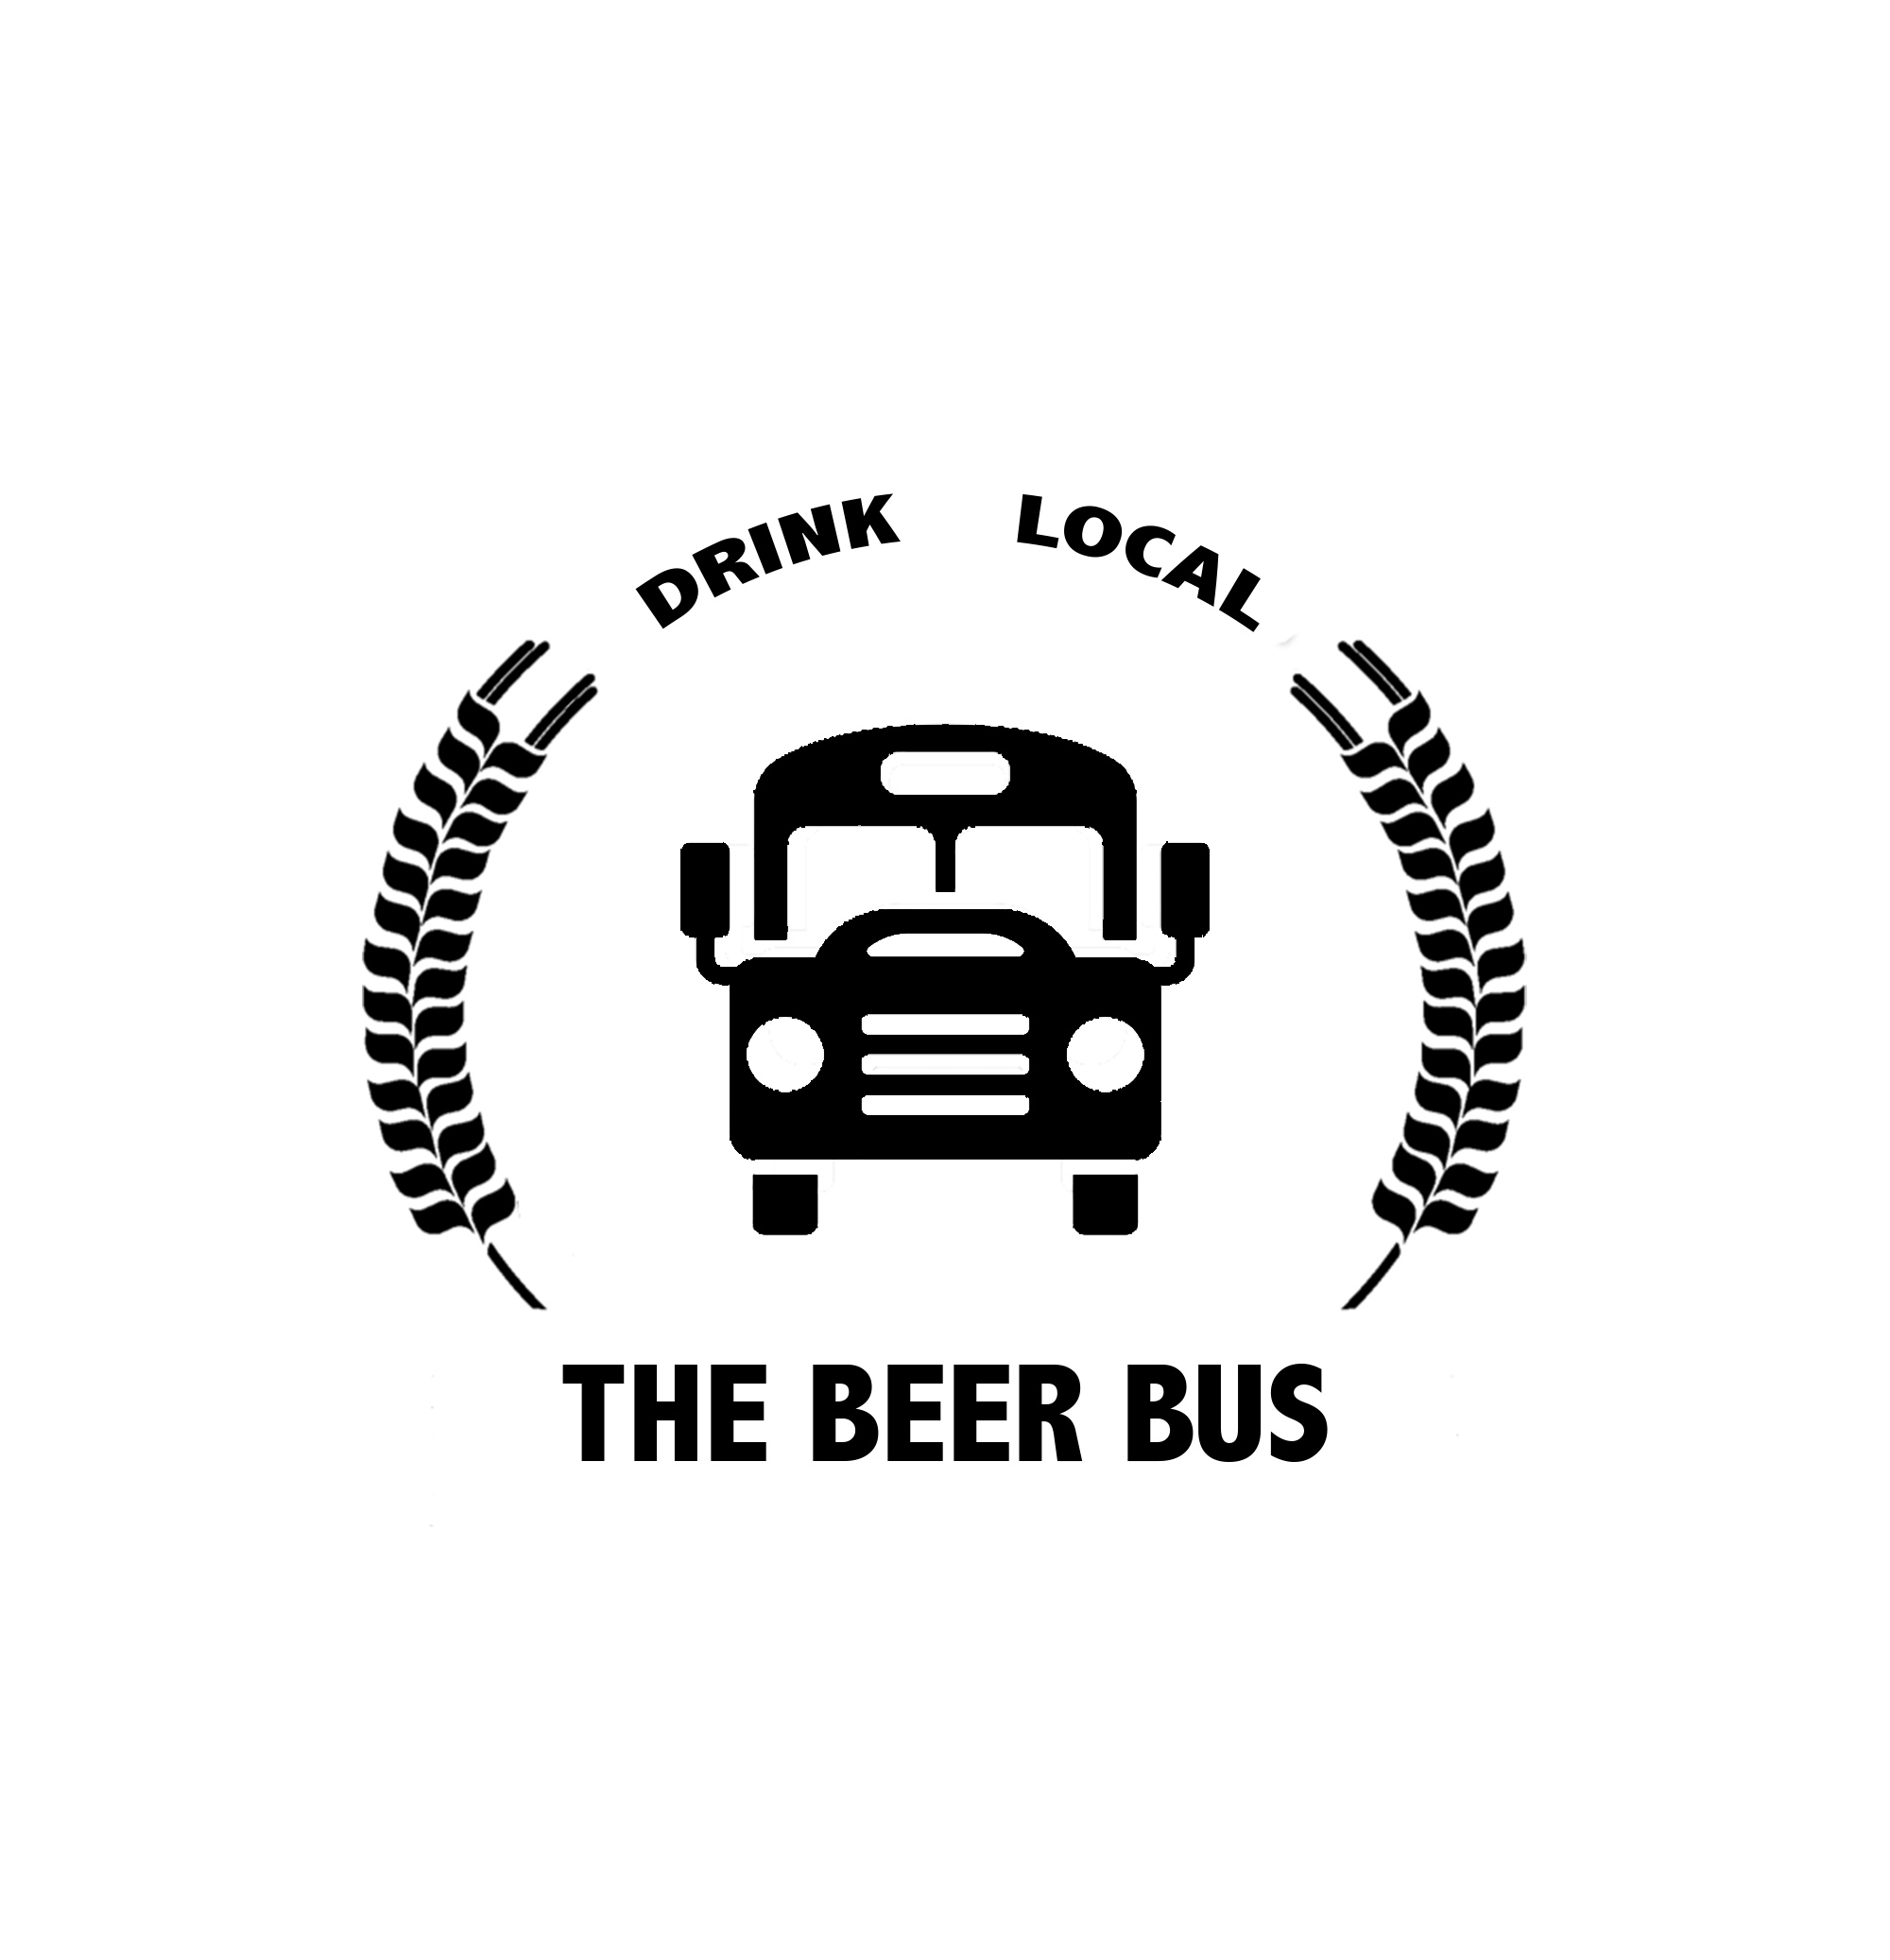 The Beer Bus Company